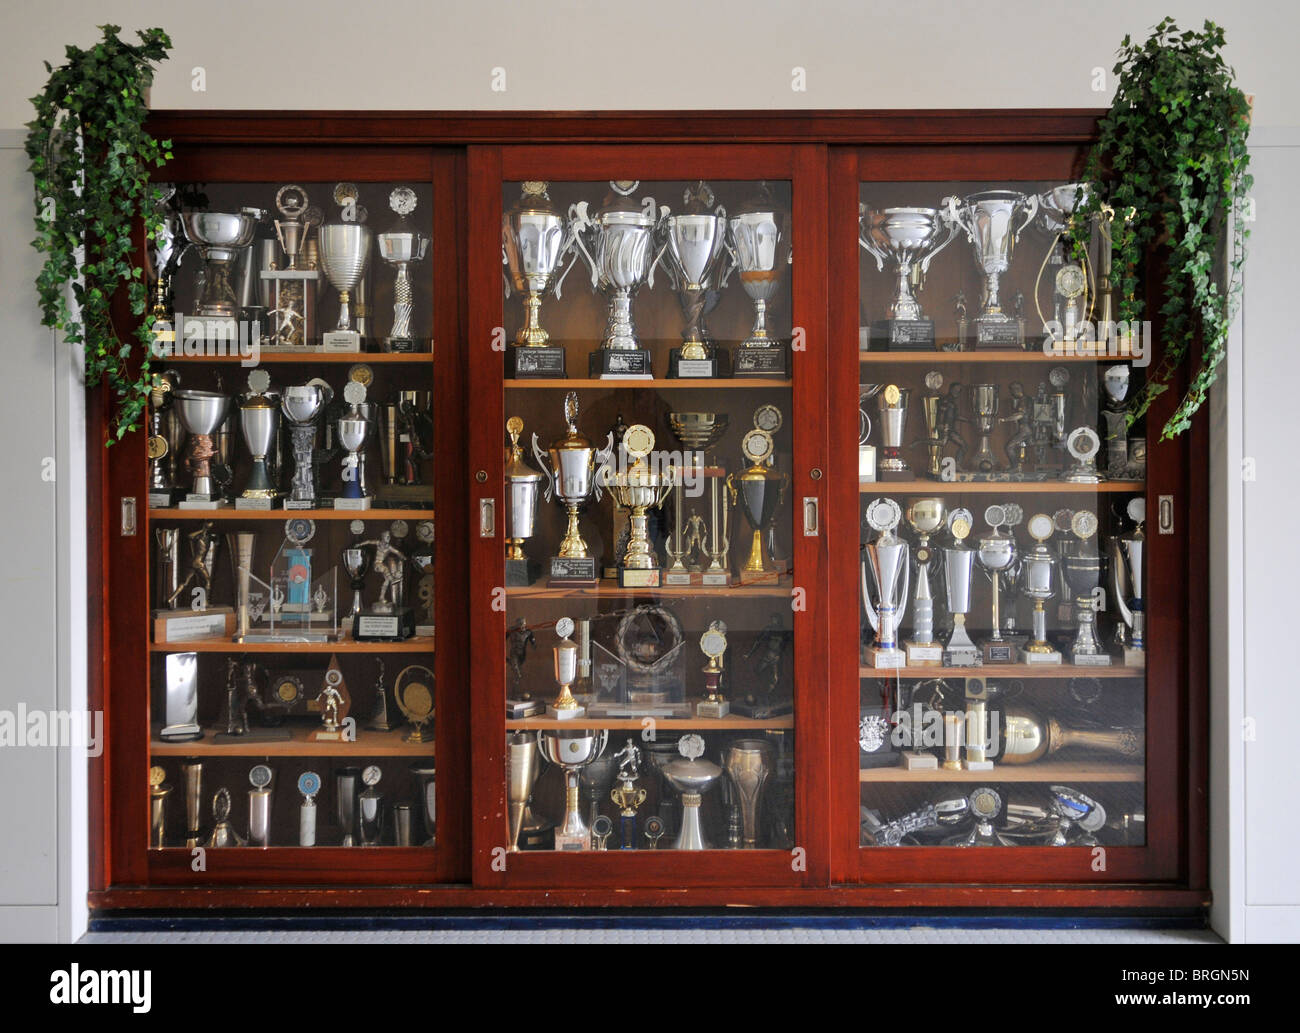 Charmant Cabinet Filled With Football Trophies In Home Of German Soccer Club   Stock  Image